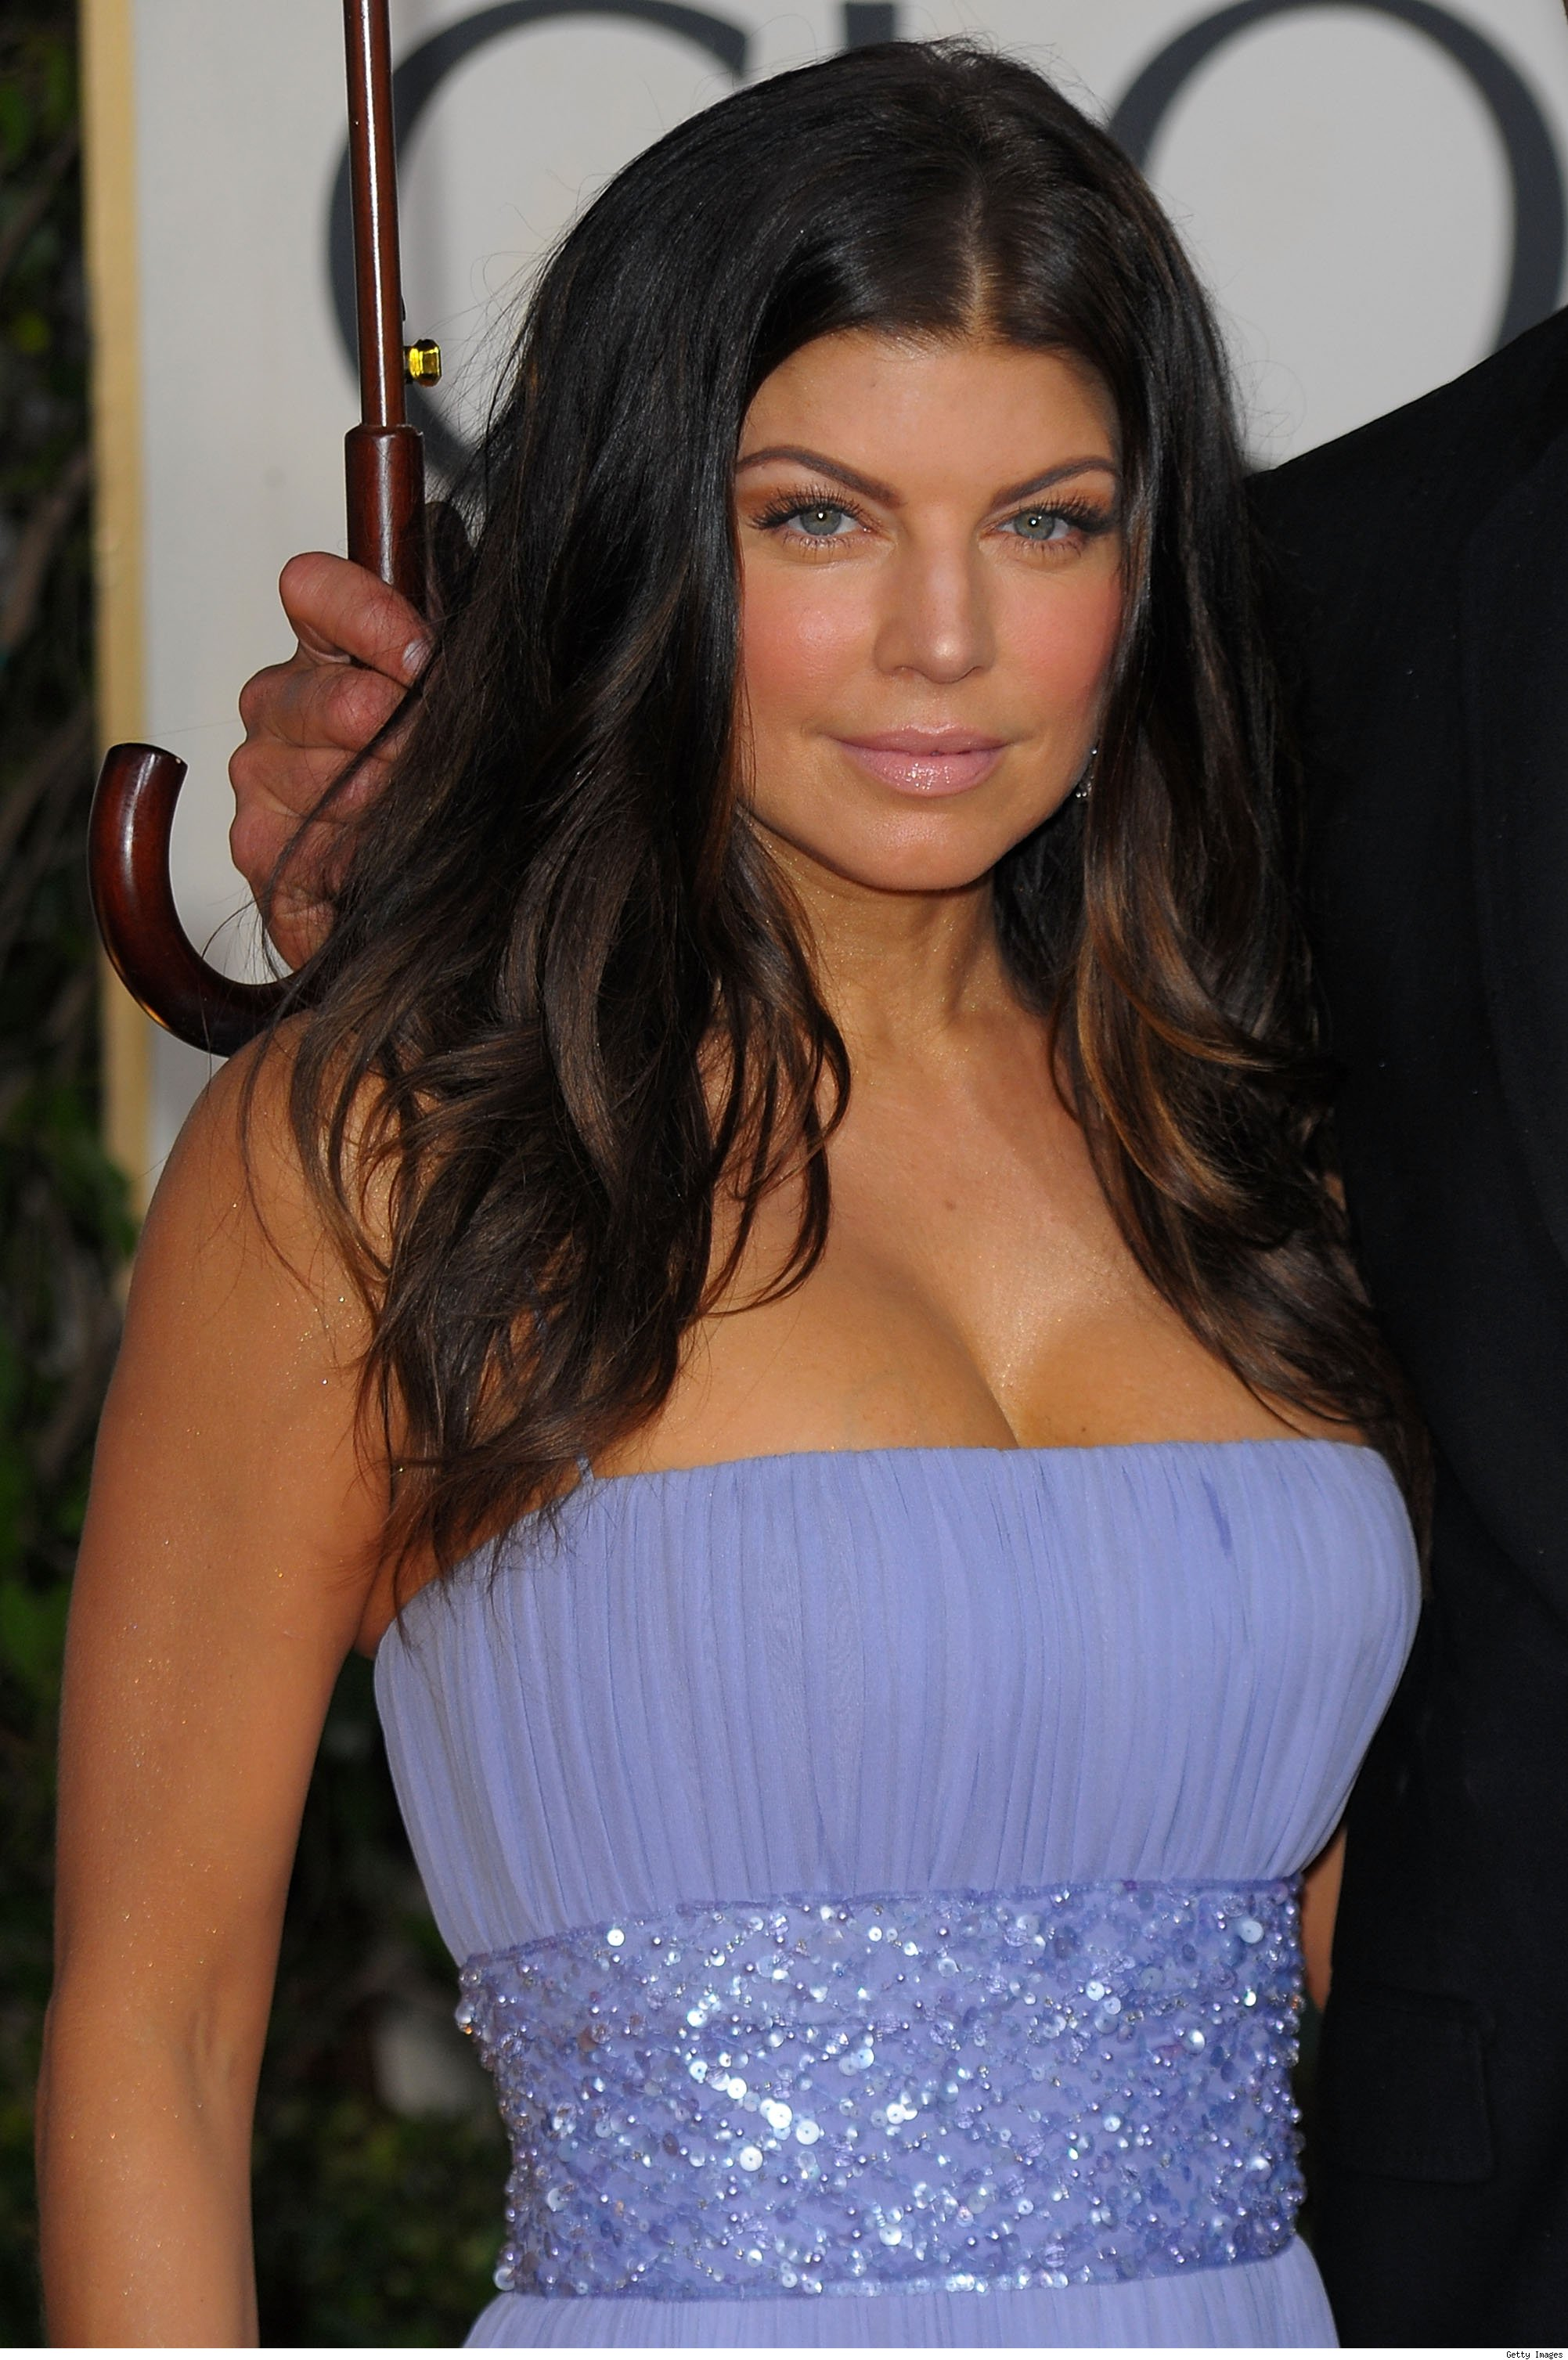 Fergie at the Golden Globes